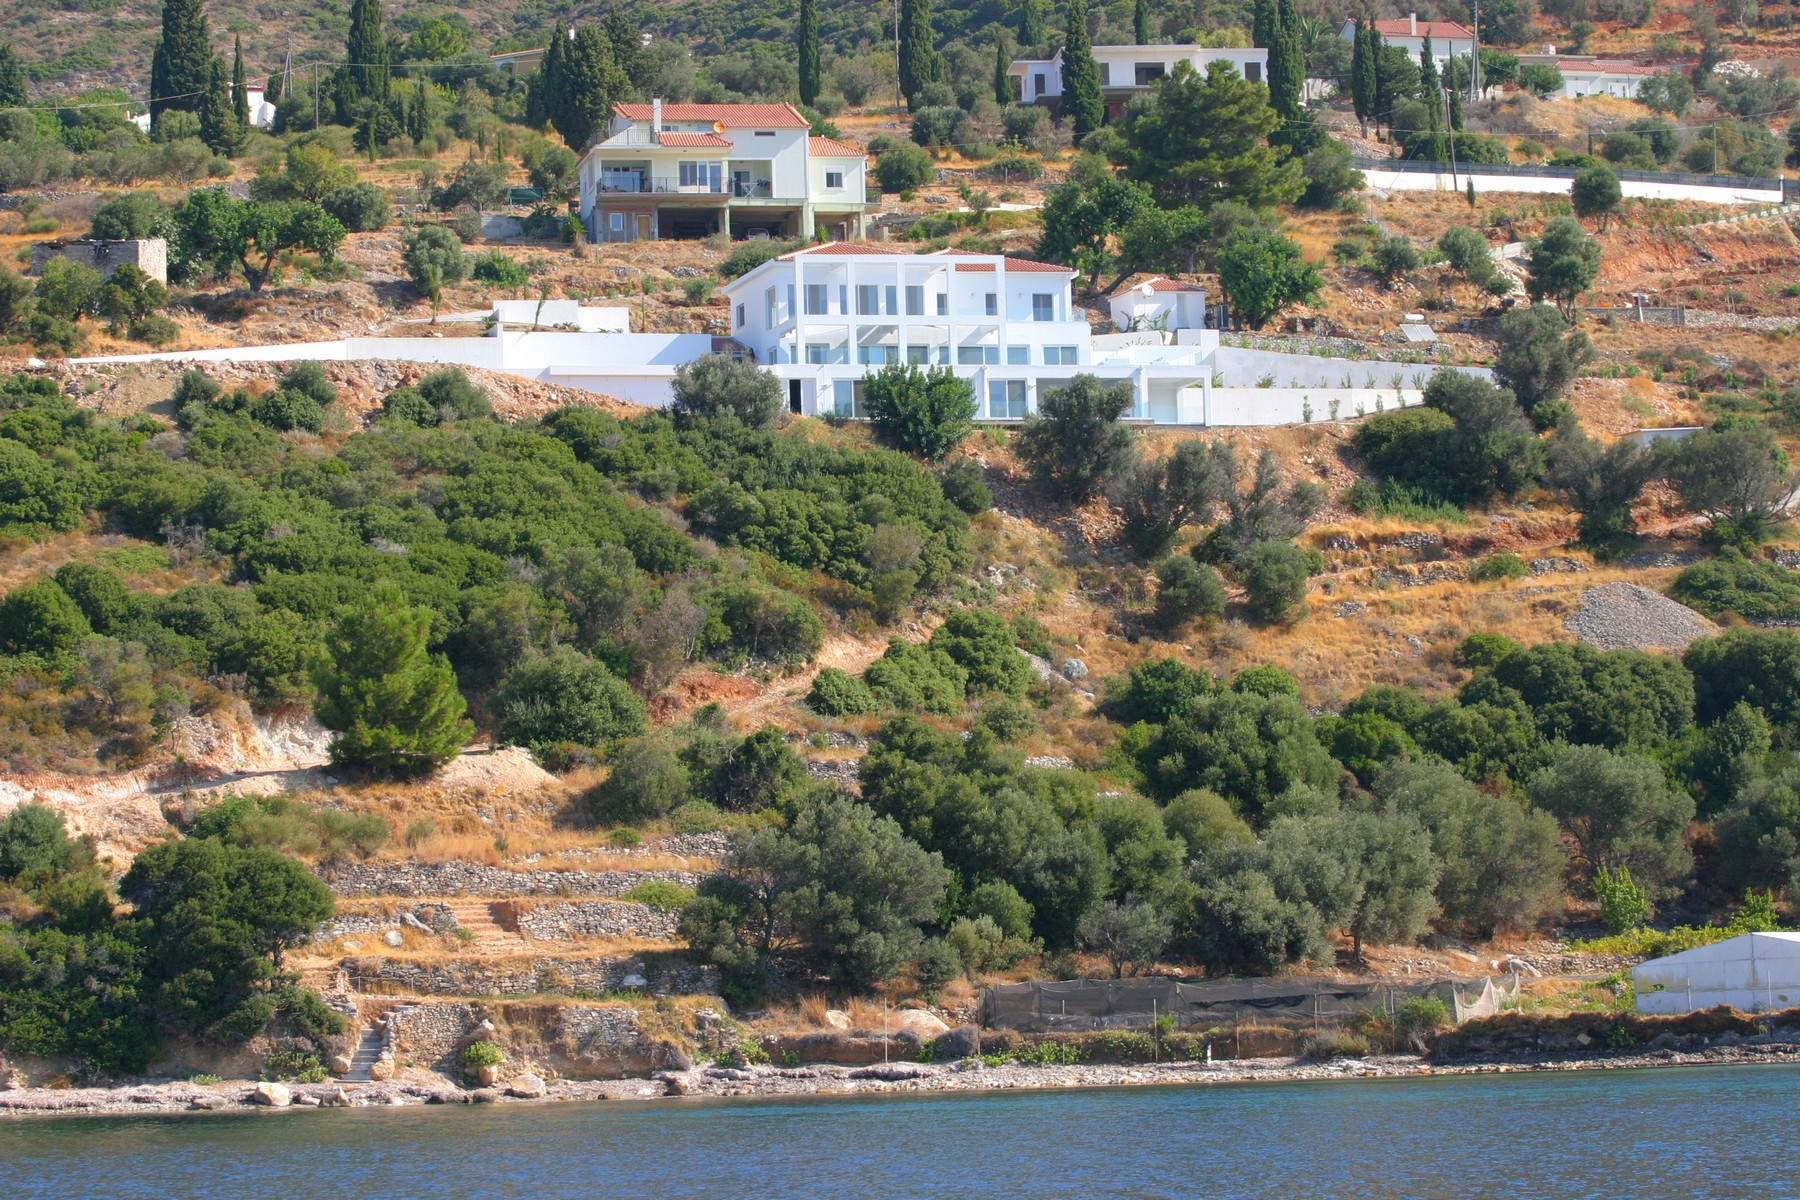 Single Family Home for Sale at Samos Villa Samos, Kalami, East Aegean Sea Other Greece, Other Areas In Greece, 83100 Greece